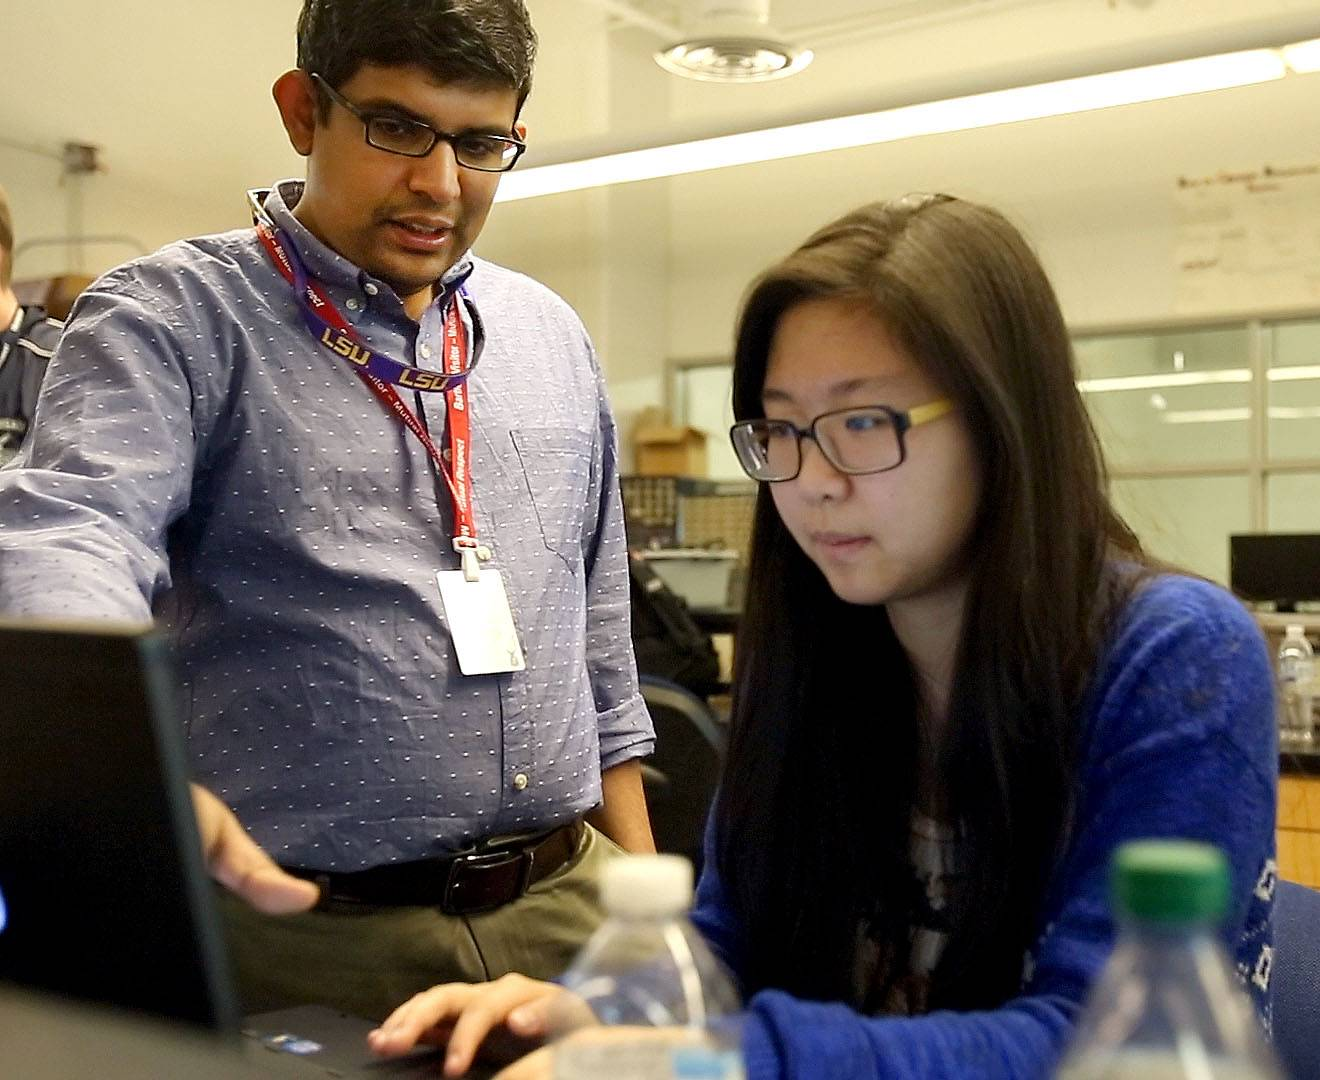 Krishnendu Roy, a math and computer science professor at Valdosta State University in Georgia, helps freshman Autumn Chung. Roy will continue to mentor the students.